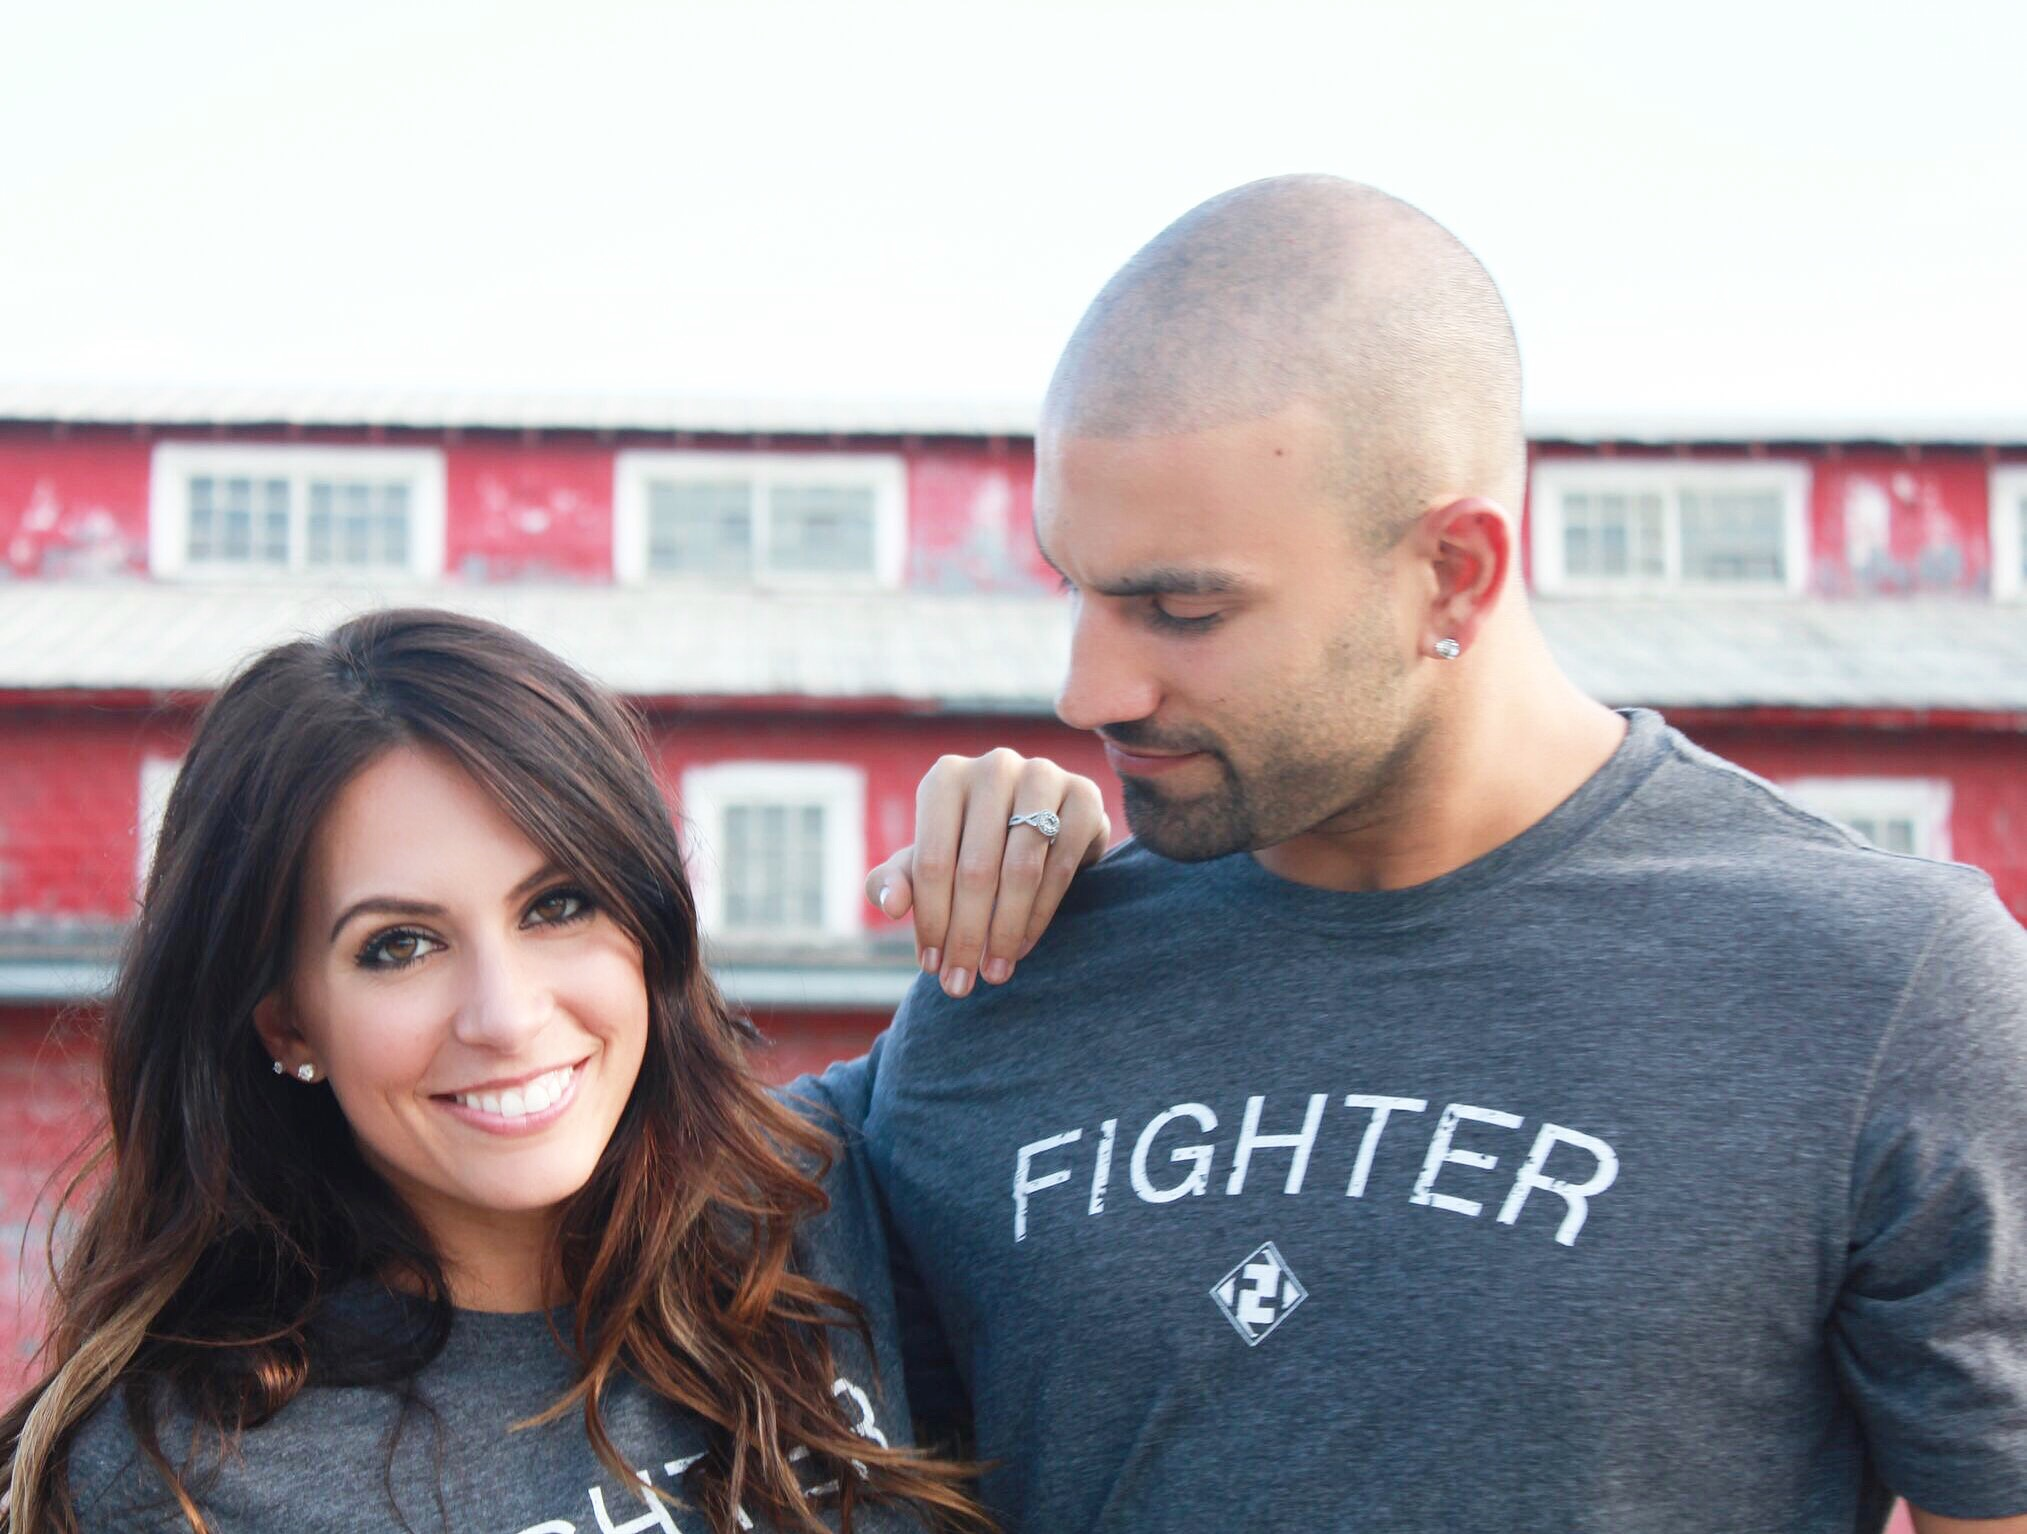 """CREATED BY HUSBAND & WIFE - PROFESSIONAL BOXER, JOSH """"HANDSOME HITMAN"""" HIMES AND HIS WIFE, SINGER/SONGWRITER BRYNN MARIE, TEAMED UP TO COMBINE BOXING AND MUSIC TO GIVE EVERYDAY FIGHTERS THE OPPORTUNITY TO INCITE A POSITIVE CHANGE IN THE MIND, BODY & SOUL."""